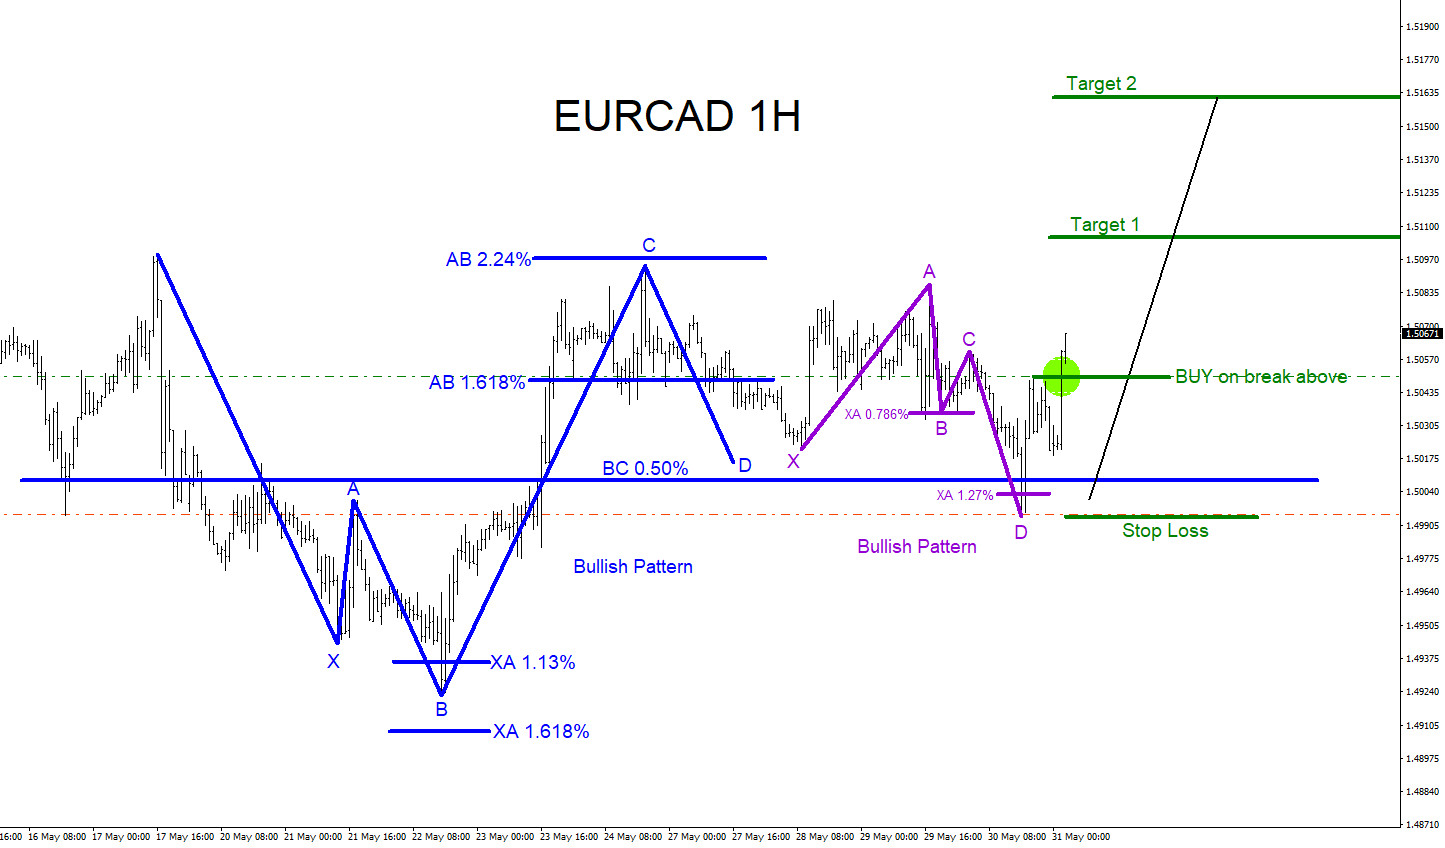 EURCAD : Elliott Wave + Bullish Patterns Calling Move Higher?